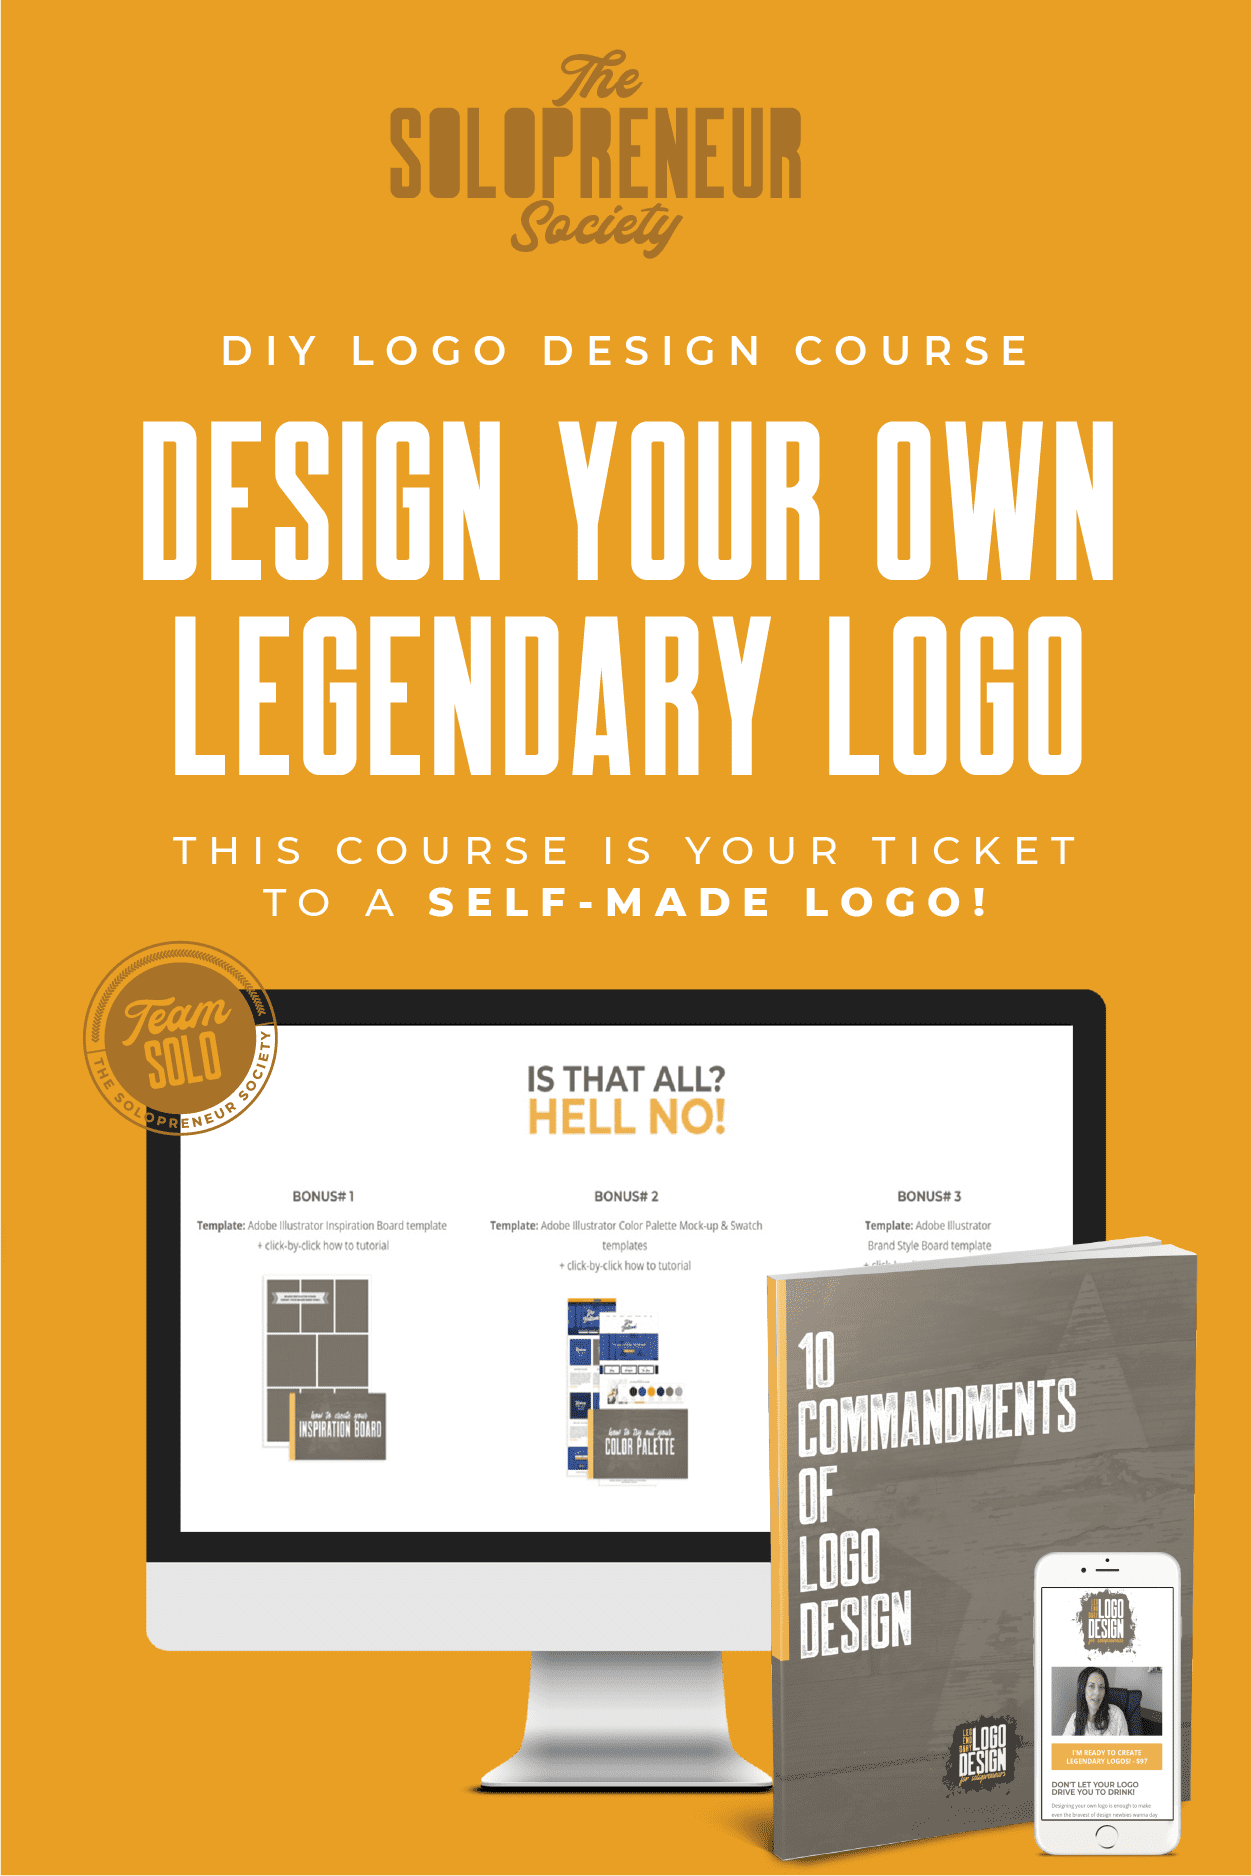 Legendary Logo Design $14 (Tripwire)